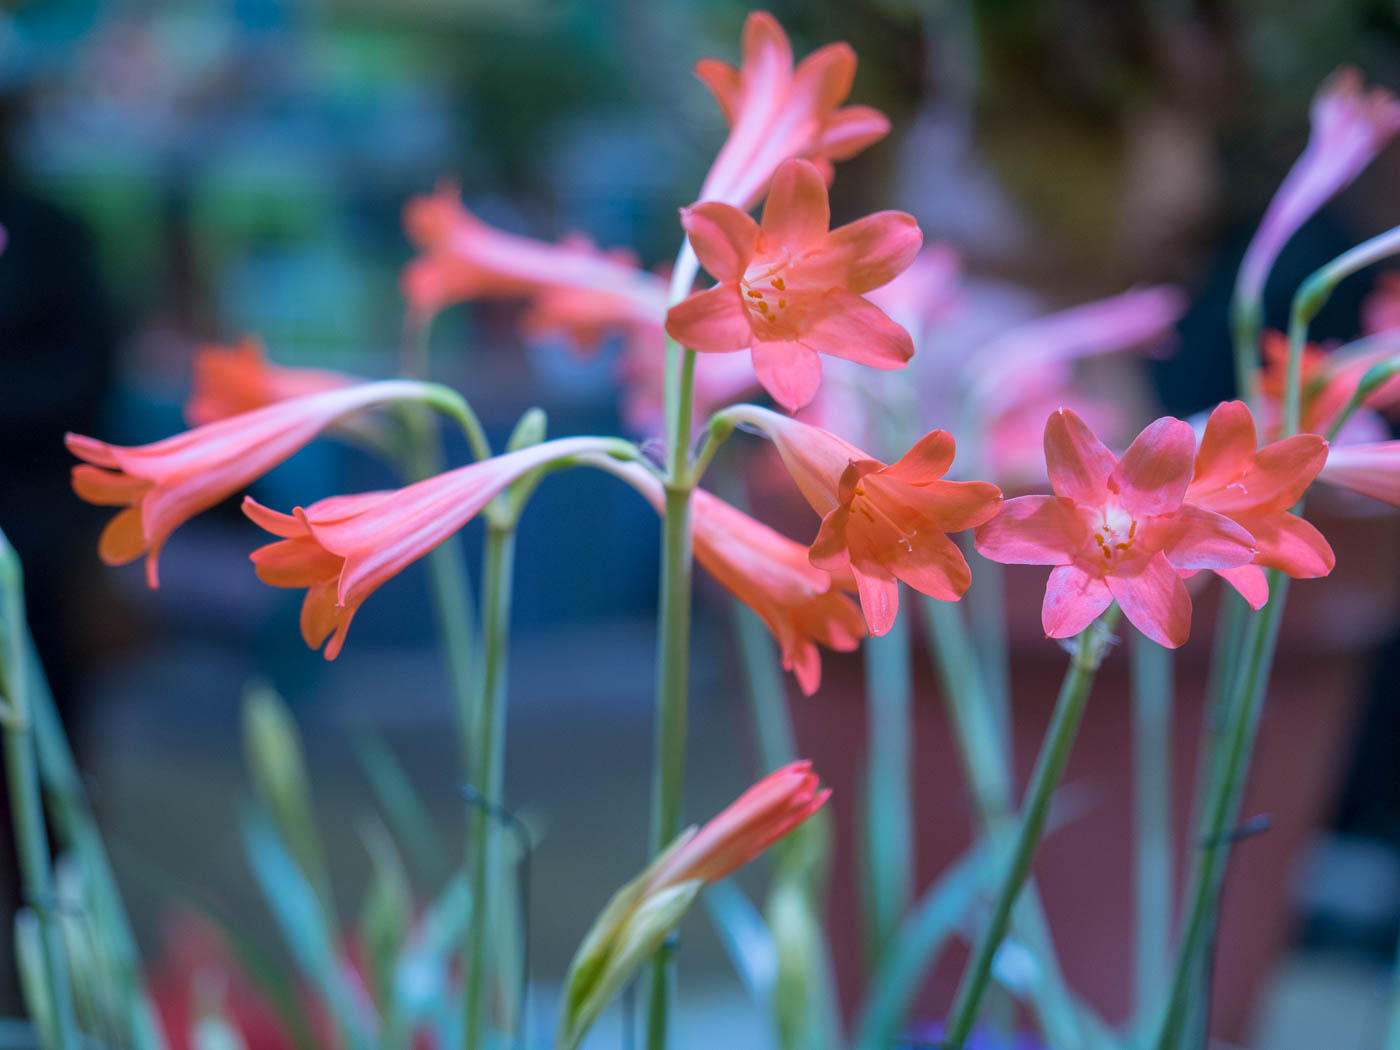 Photograph of beautiful pink flowers from the Philadelphia show